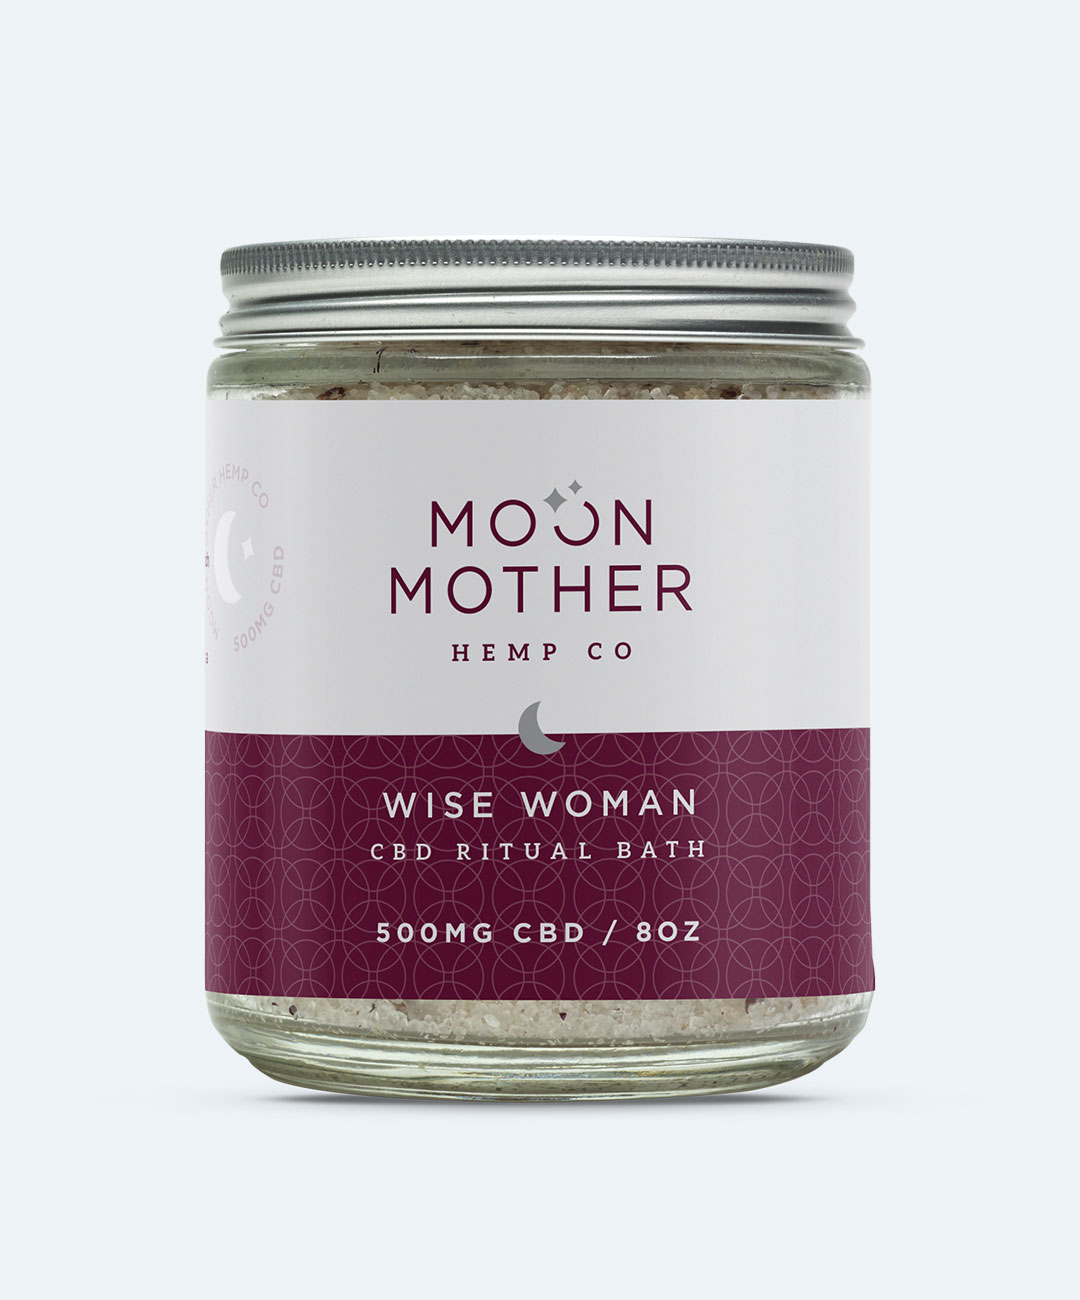 Wise Woman Ritual Bath - Moon Mother Hemp